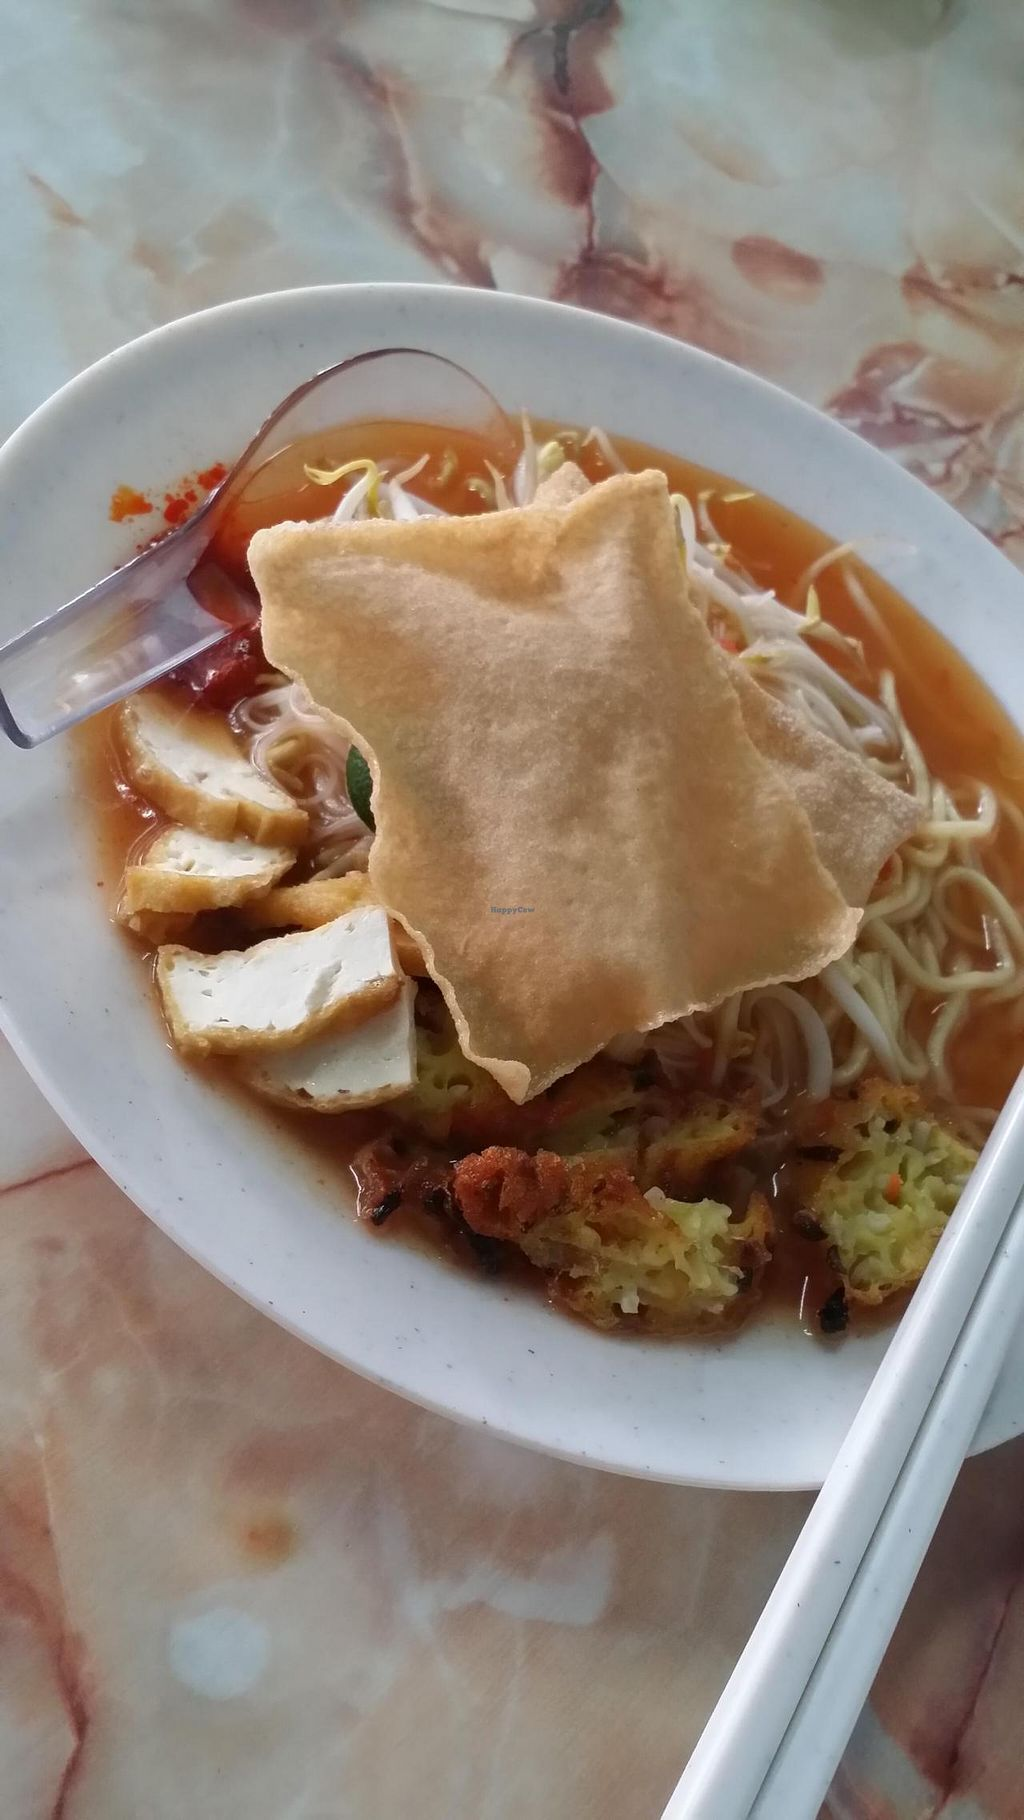 """Photo of CLOSED: Guek Cheng Vegetarian  by <a href=""""/members/profile/walter007"""">walter007</a> <br/>Jawa Mee <br/> April 22, 2014  - <a href='/contact/abuse/image/46738/68336'>Report</a>"""